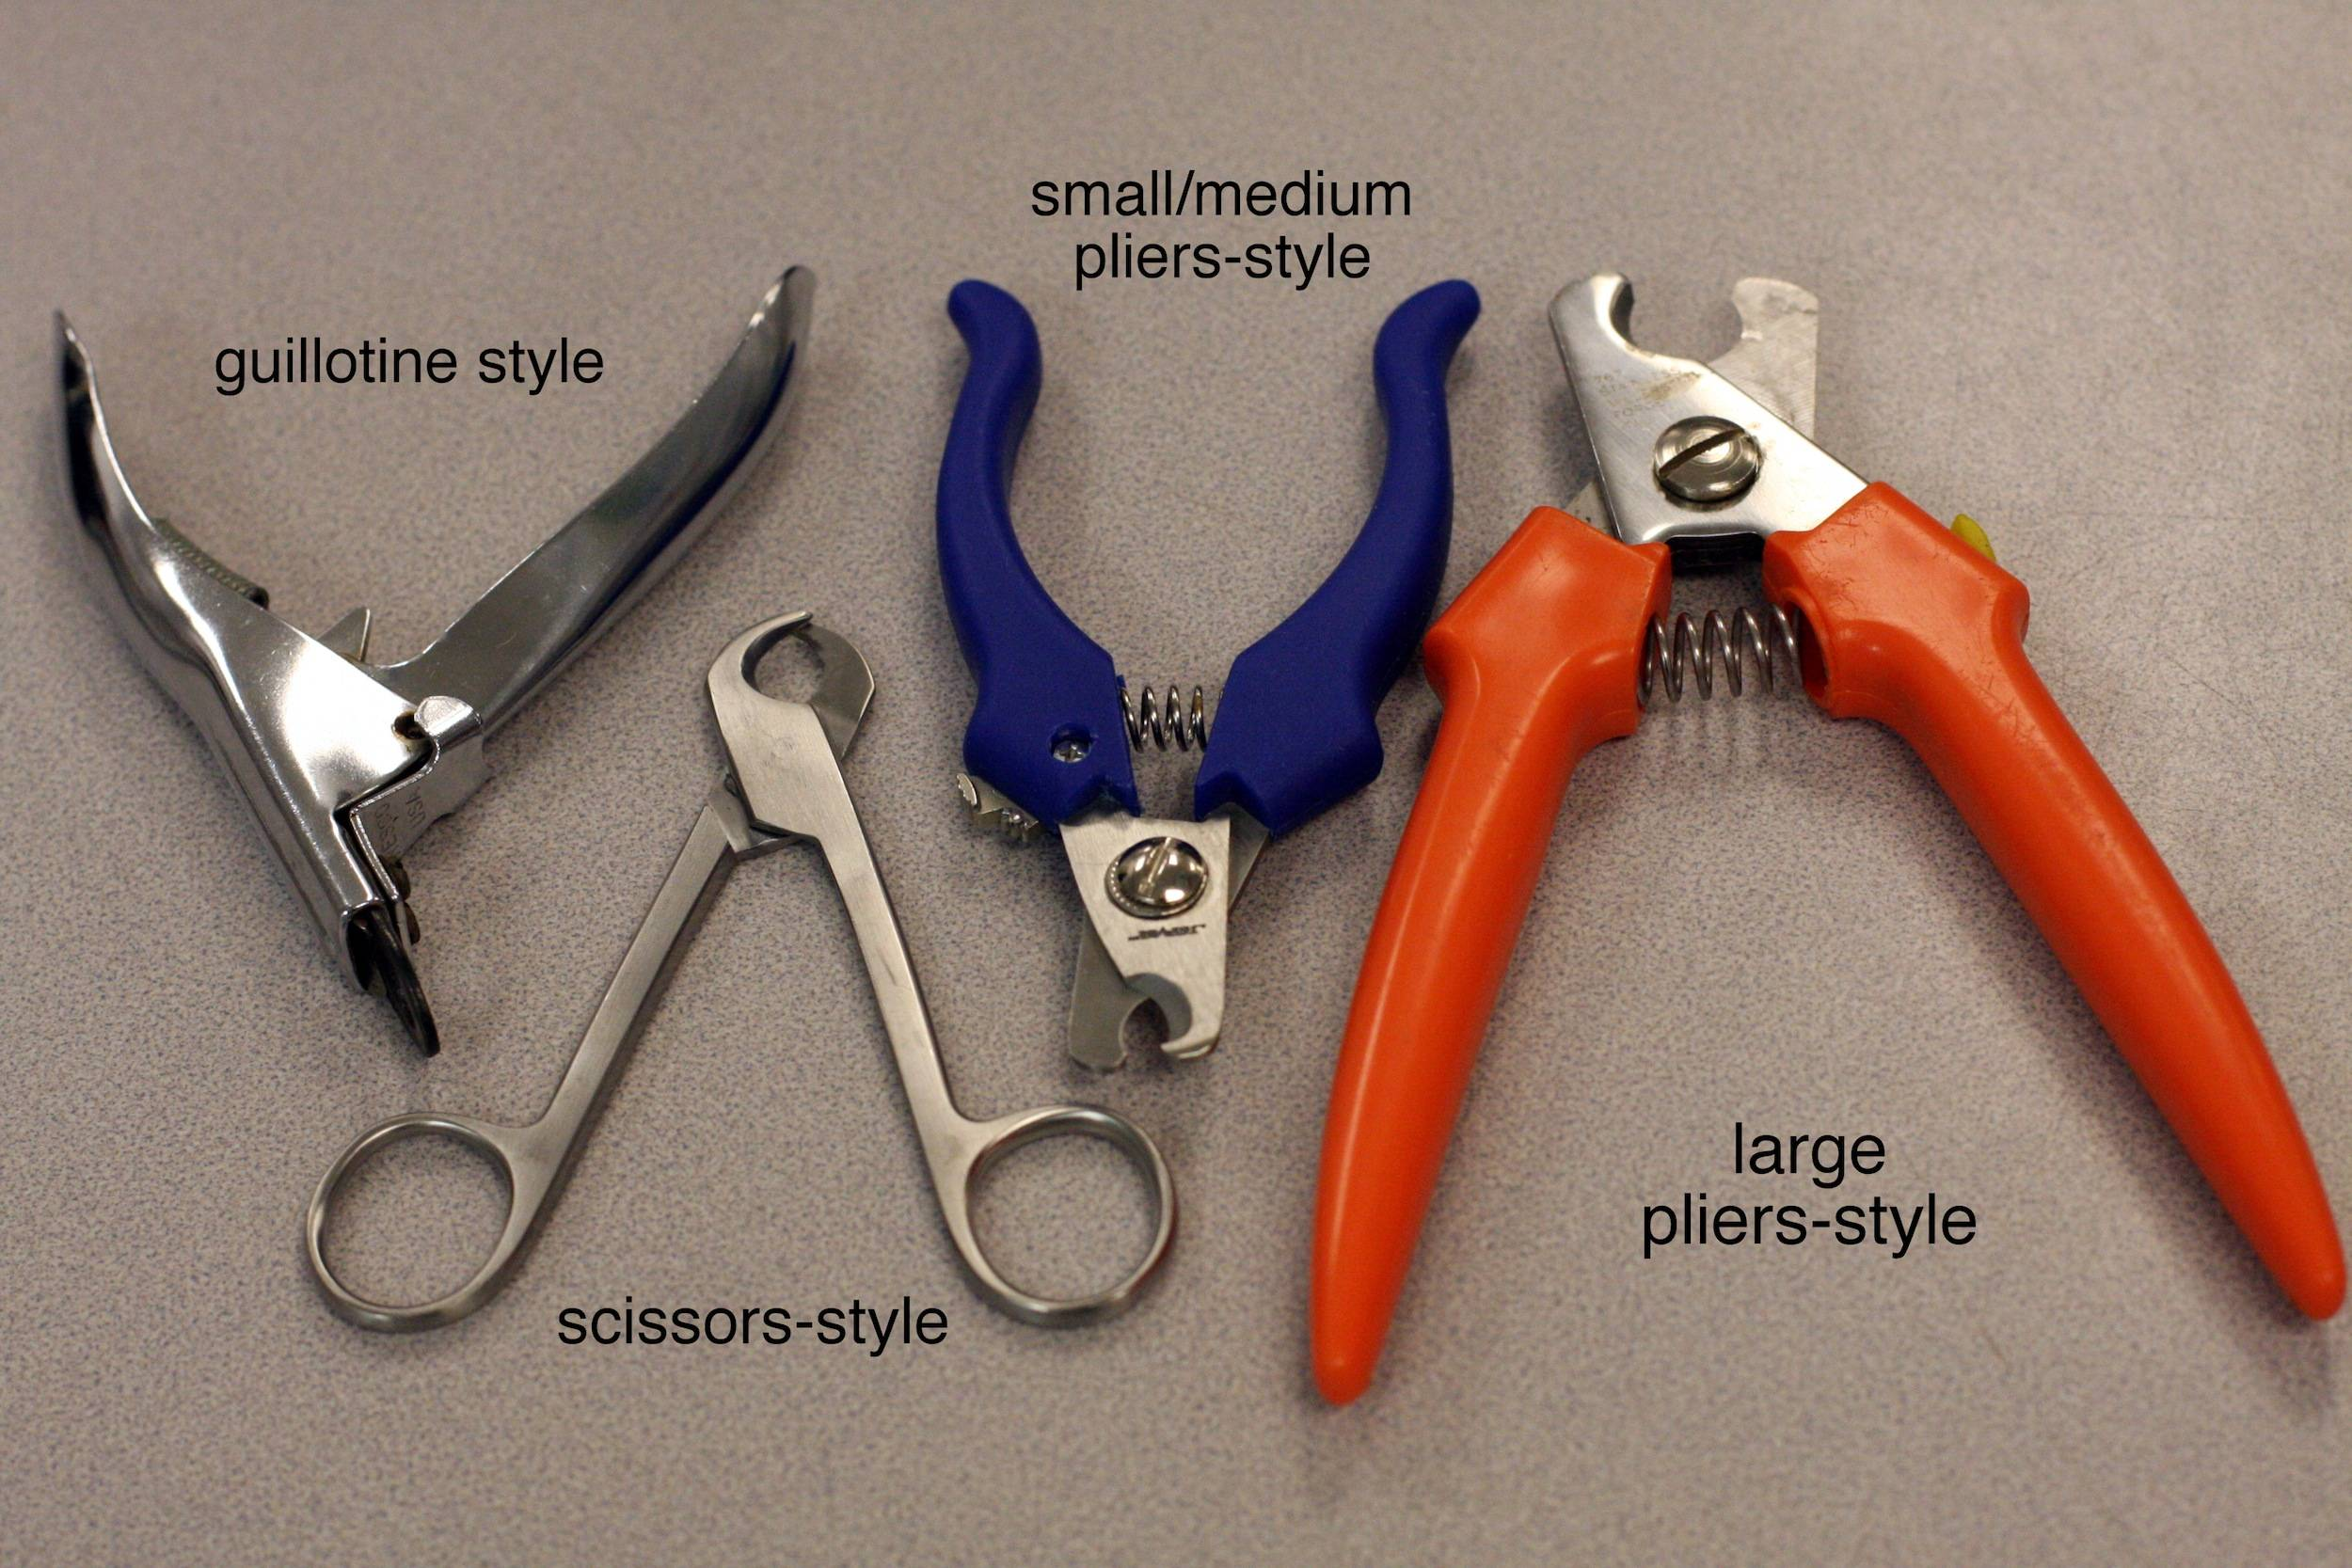 Nail-trimmers